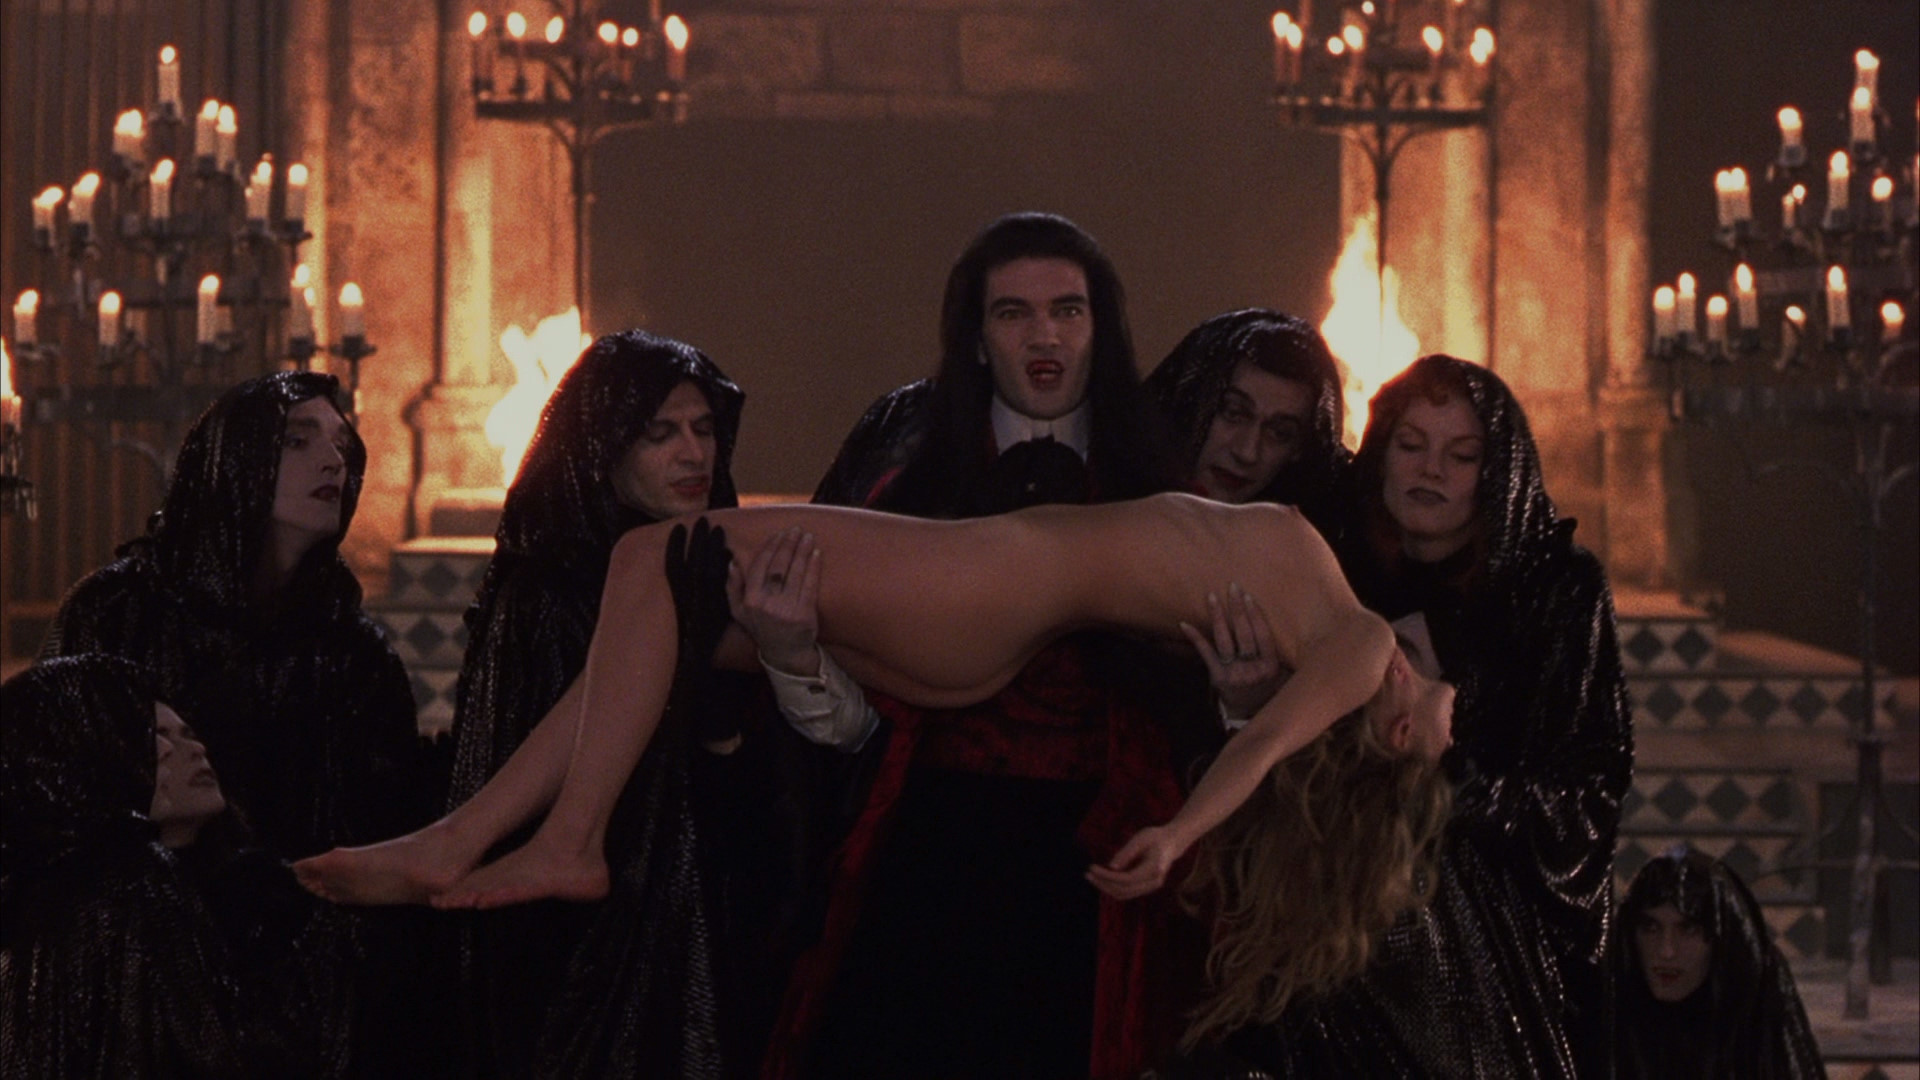 Vampir nud photo xxx scene